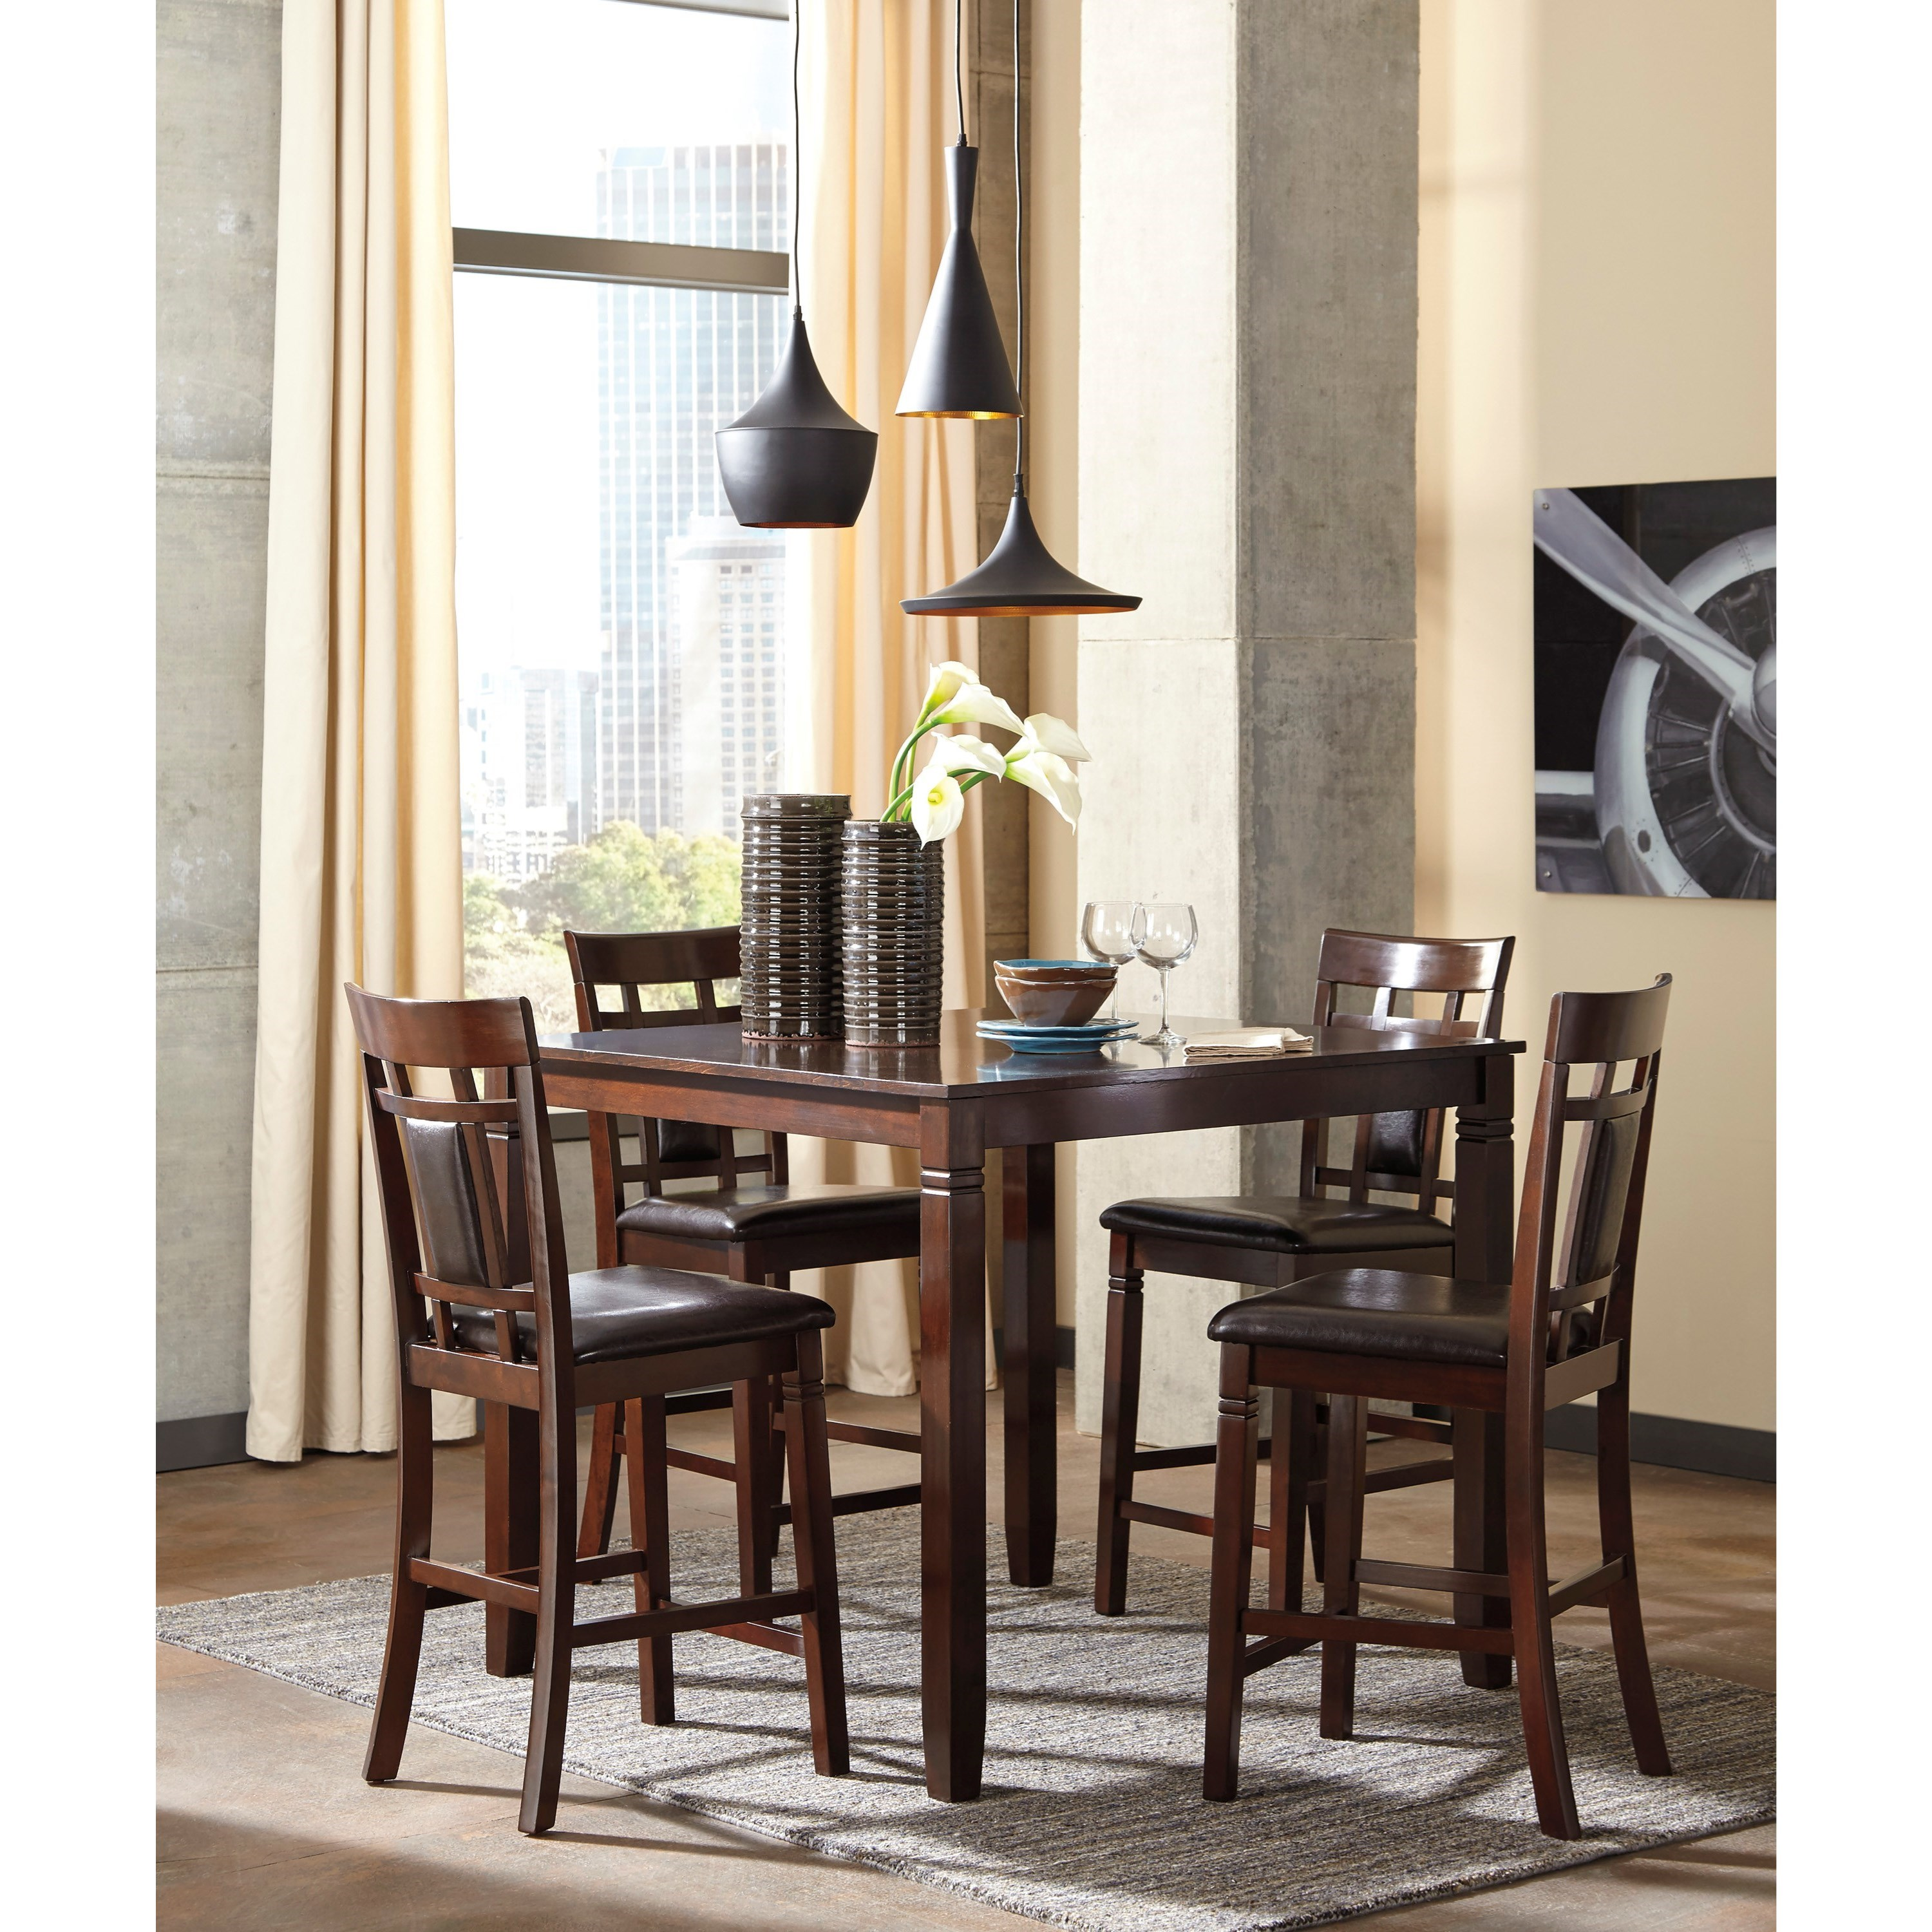 Contemporary Dining Room Sets: Contemporary 5-Piece Dining Room Counter Table Set By